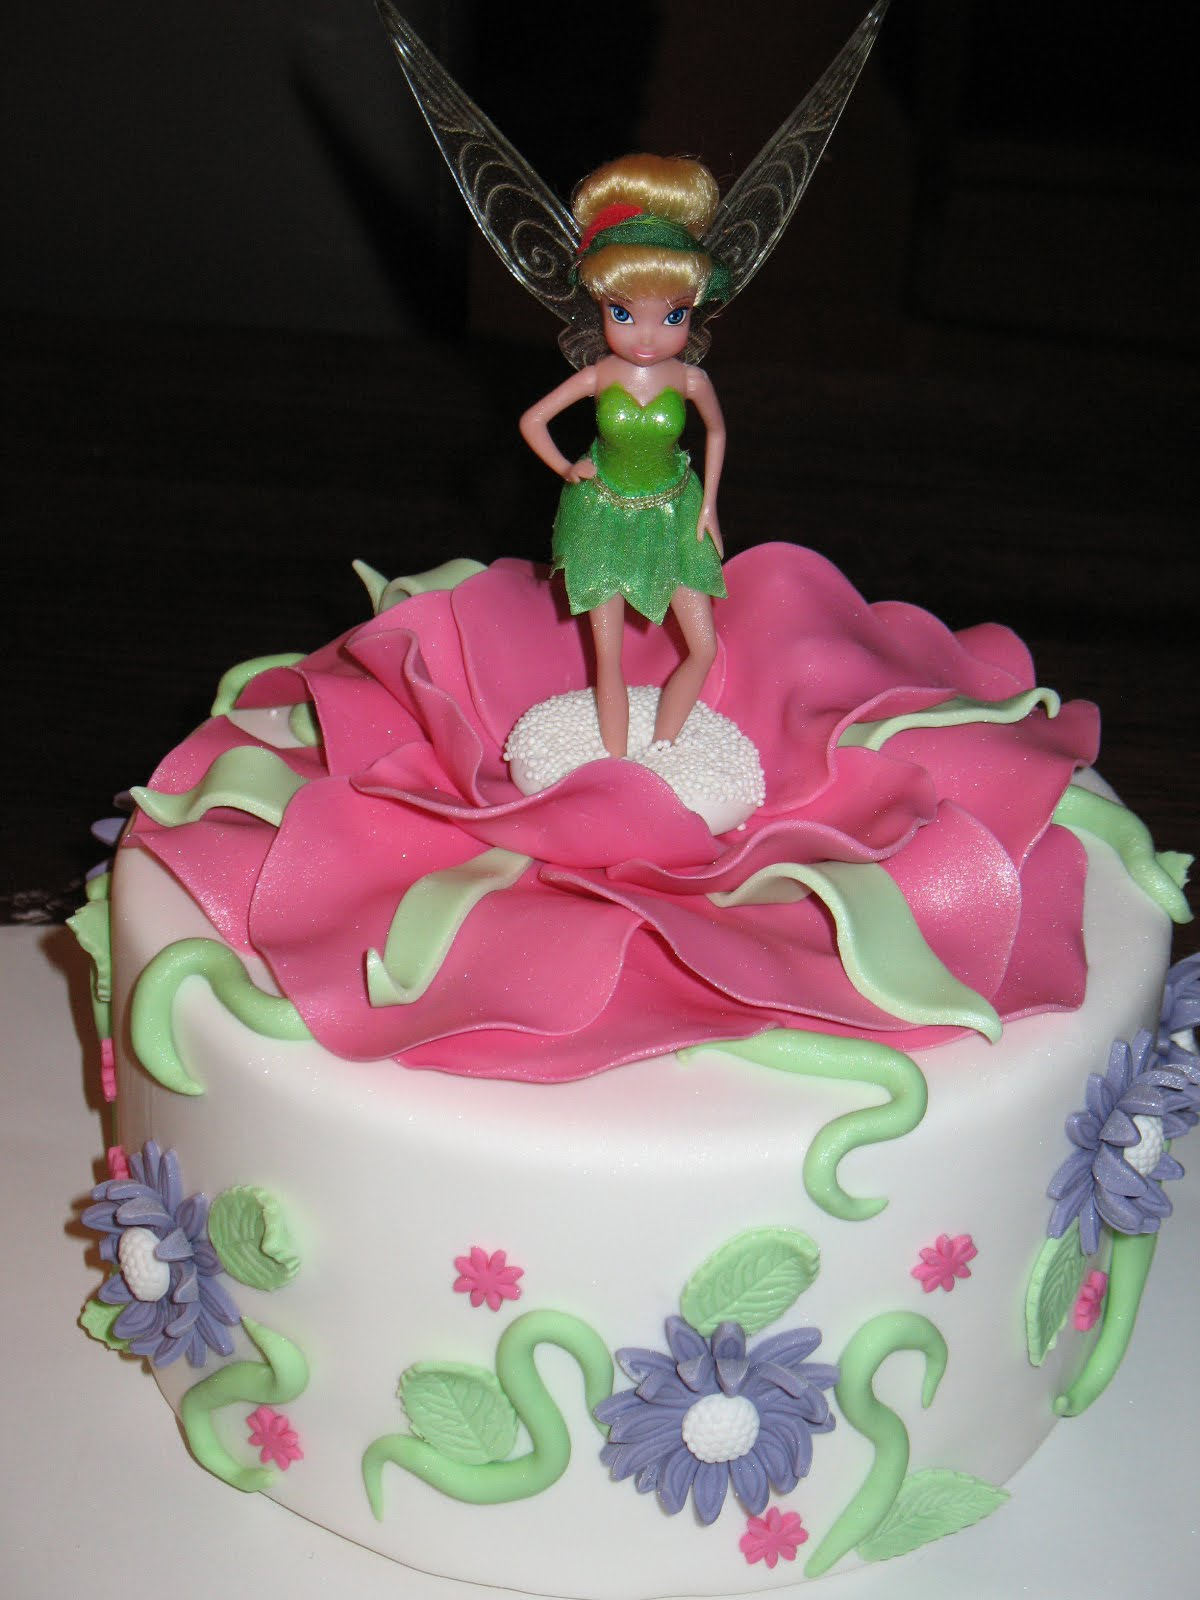 How To Make Tinkerbell Cake Decorations